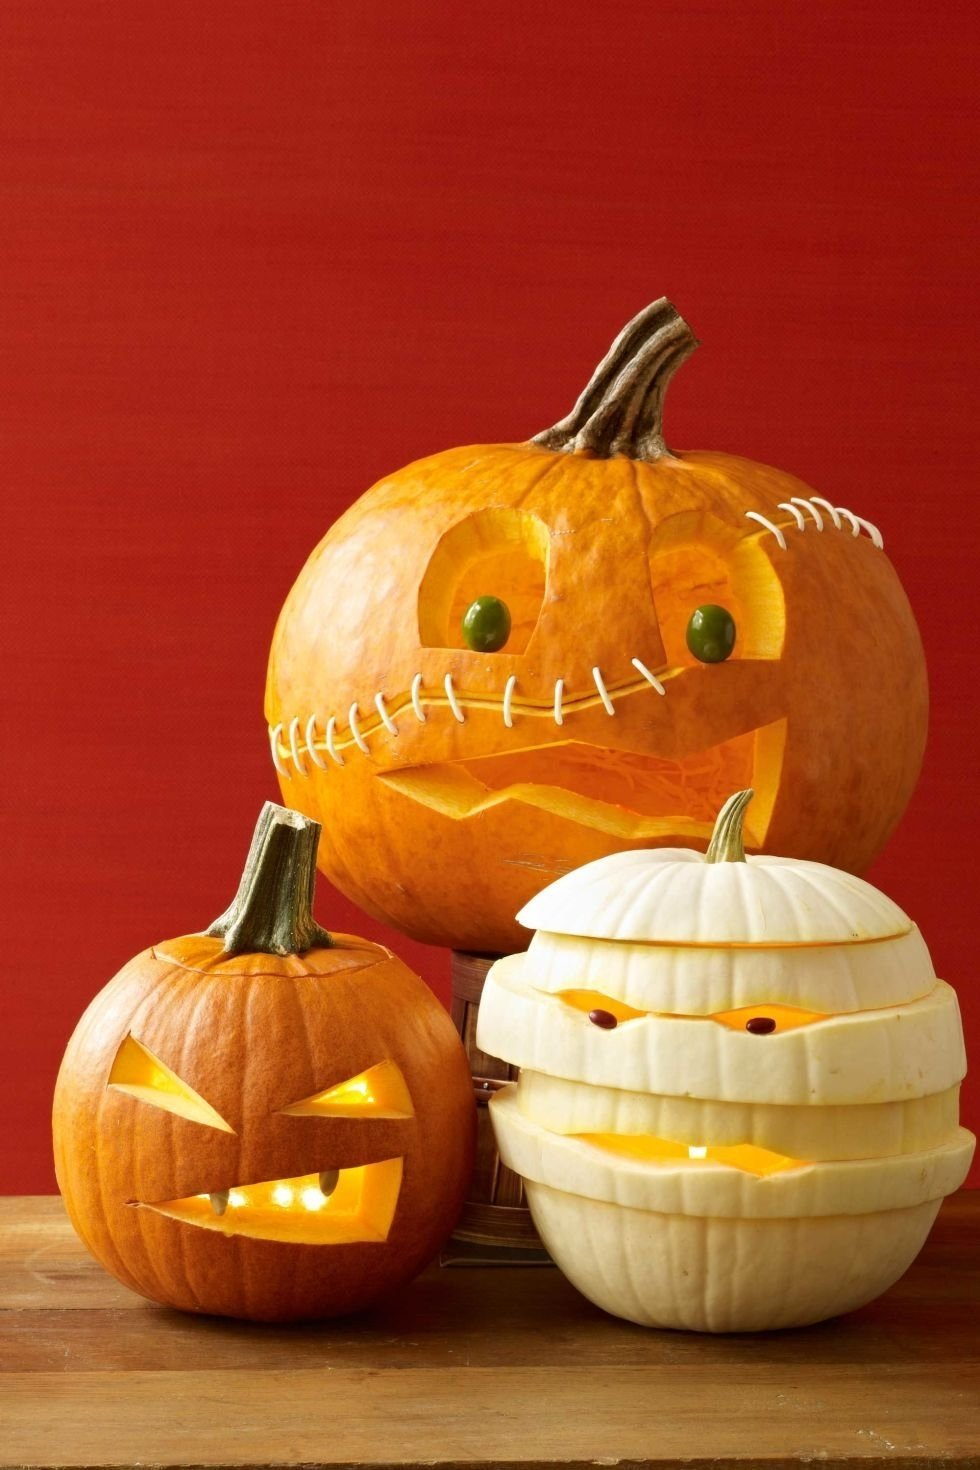 38 halloween pumpkin carving ideas & how to carve | pumpkin carvings